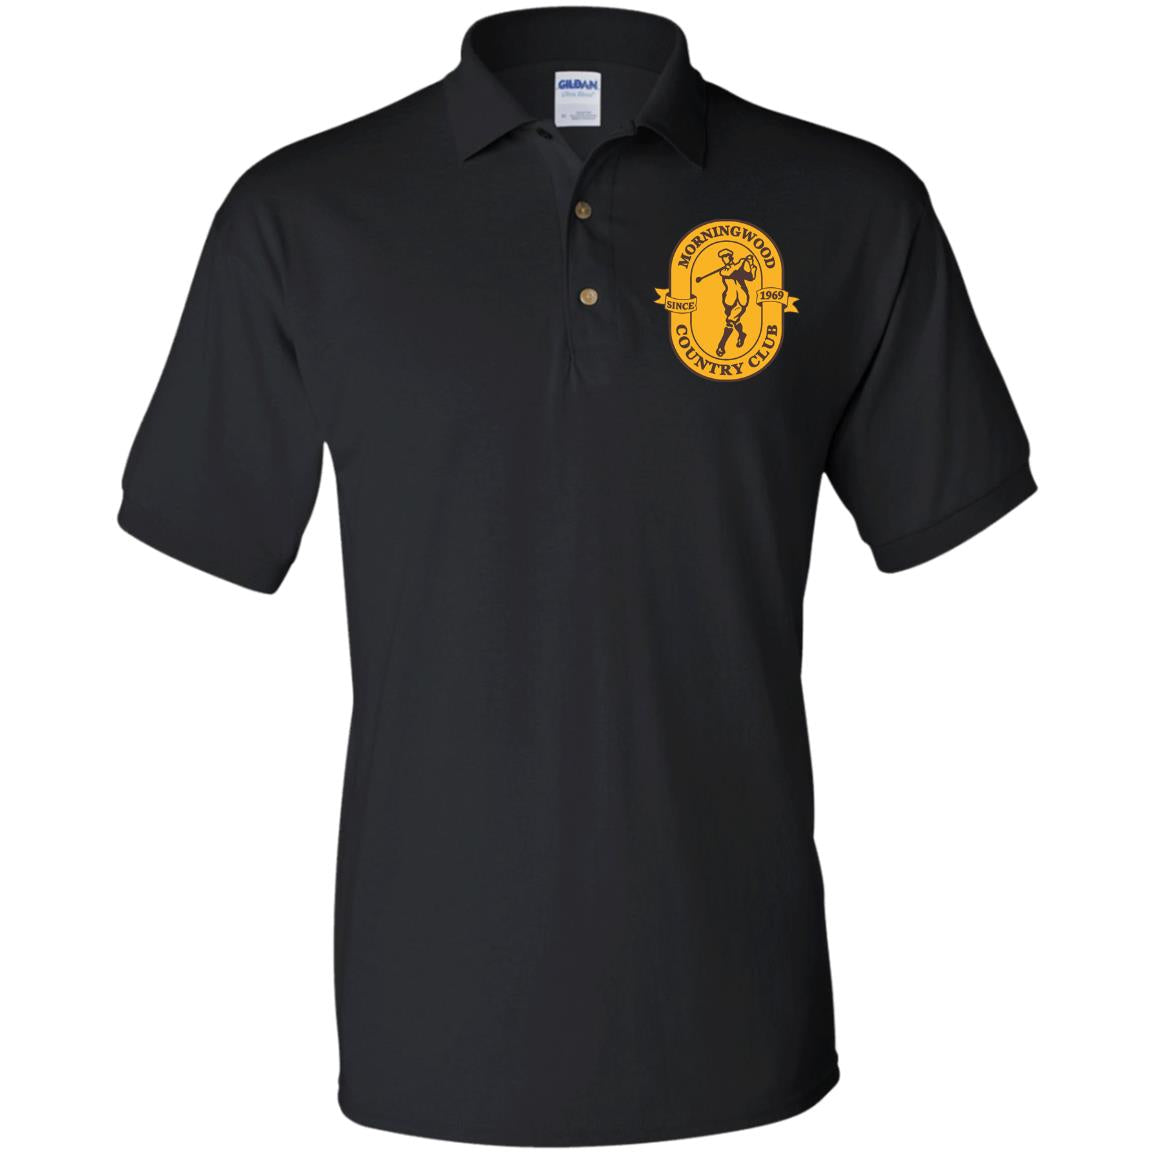 Morningwood C.C.  Polo Shirt (Embroidered)